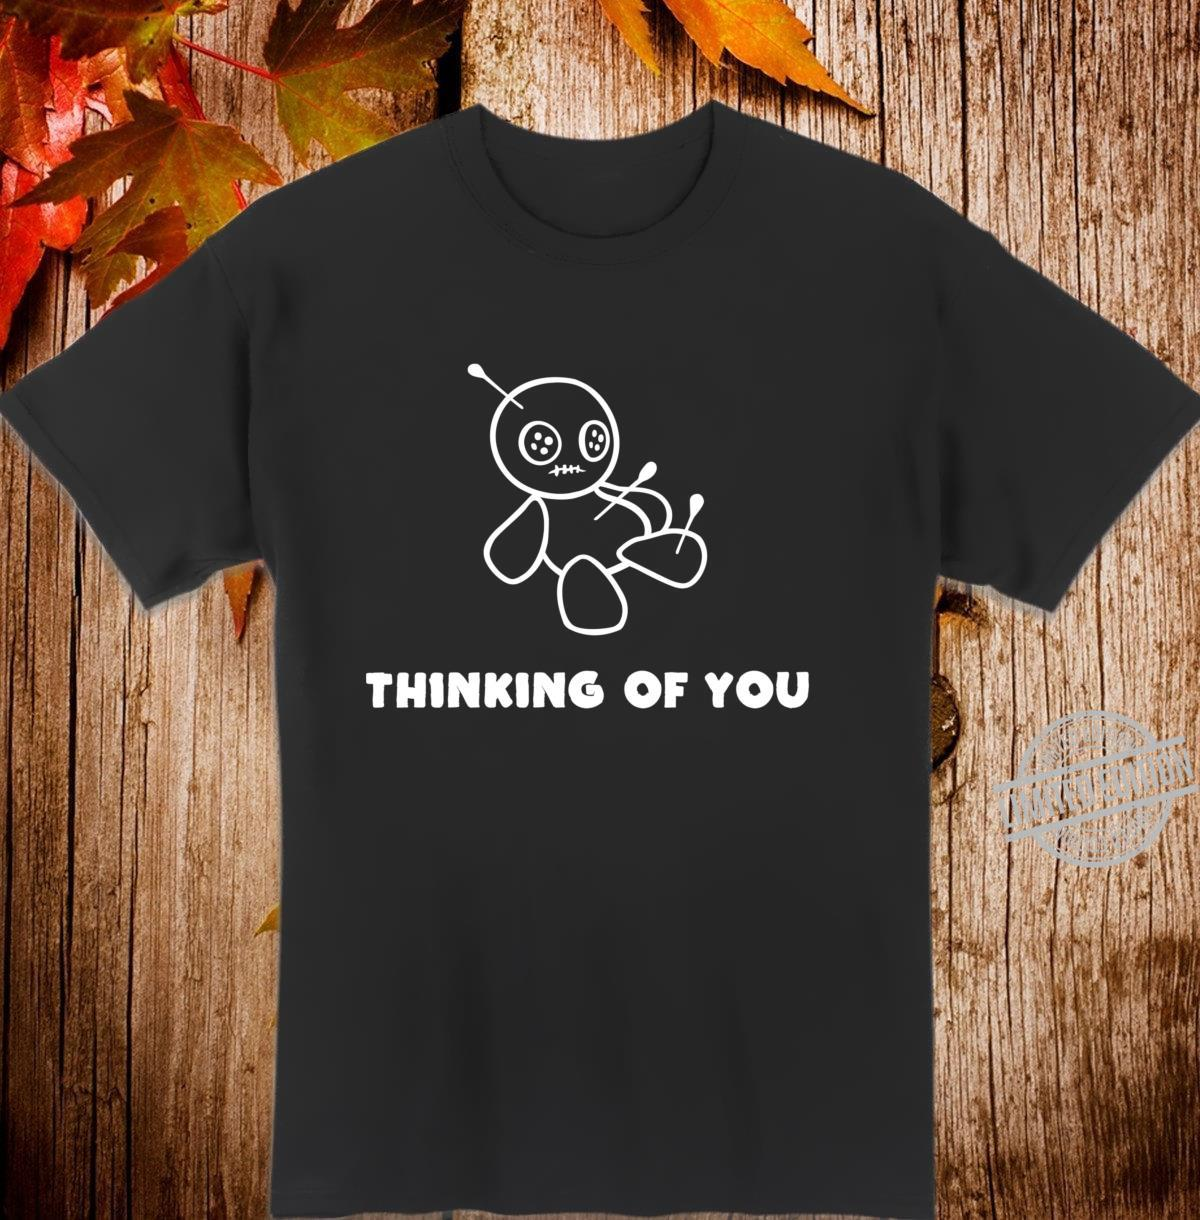 Thinking Of You Voodoo Puppe Denke an dich Shirt